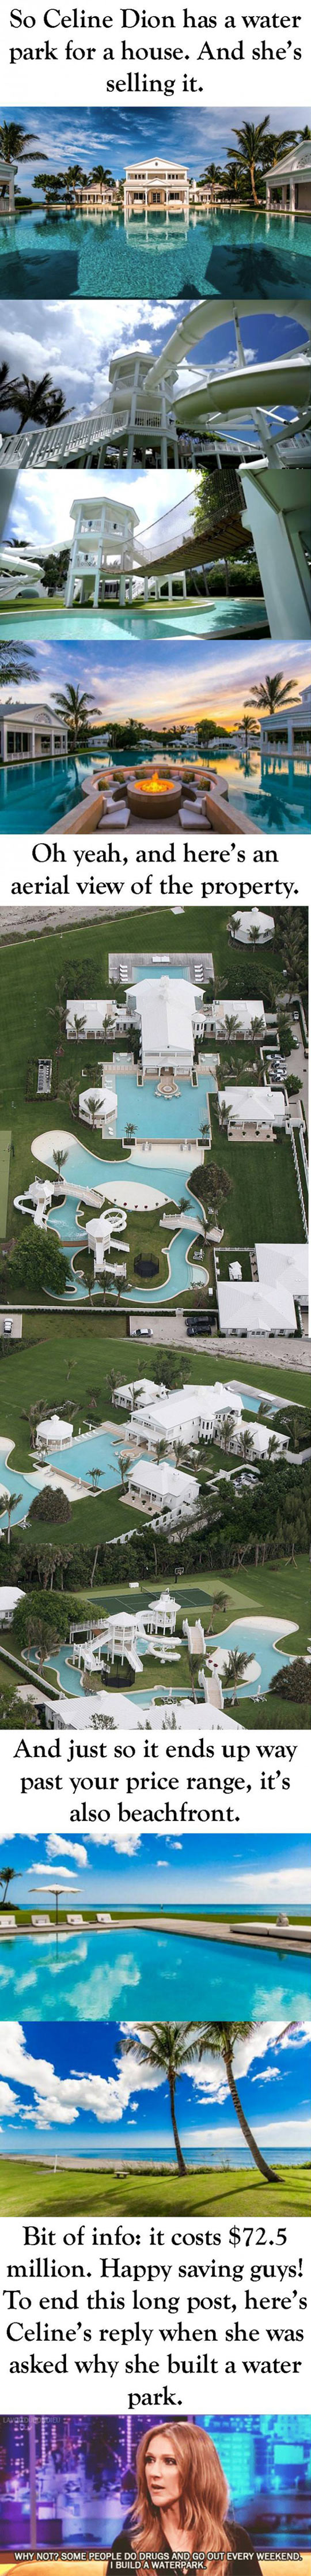 cool-Celine-Dion-water-park-house